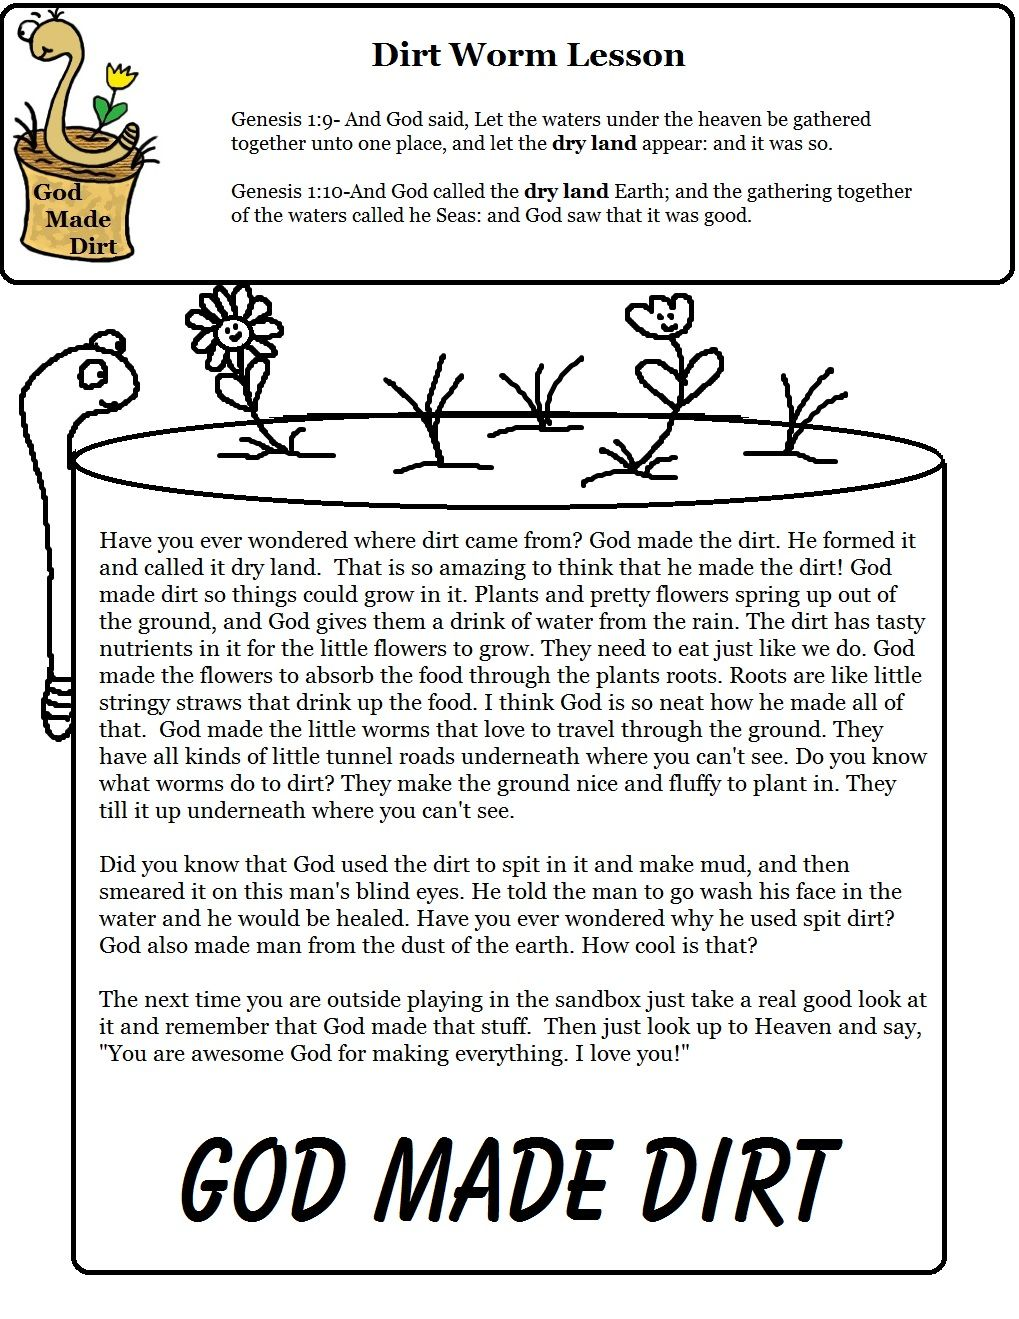 Pin by Special Nature on To make | School lessons, Bible lessons for